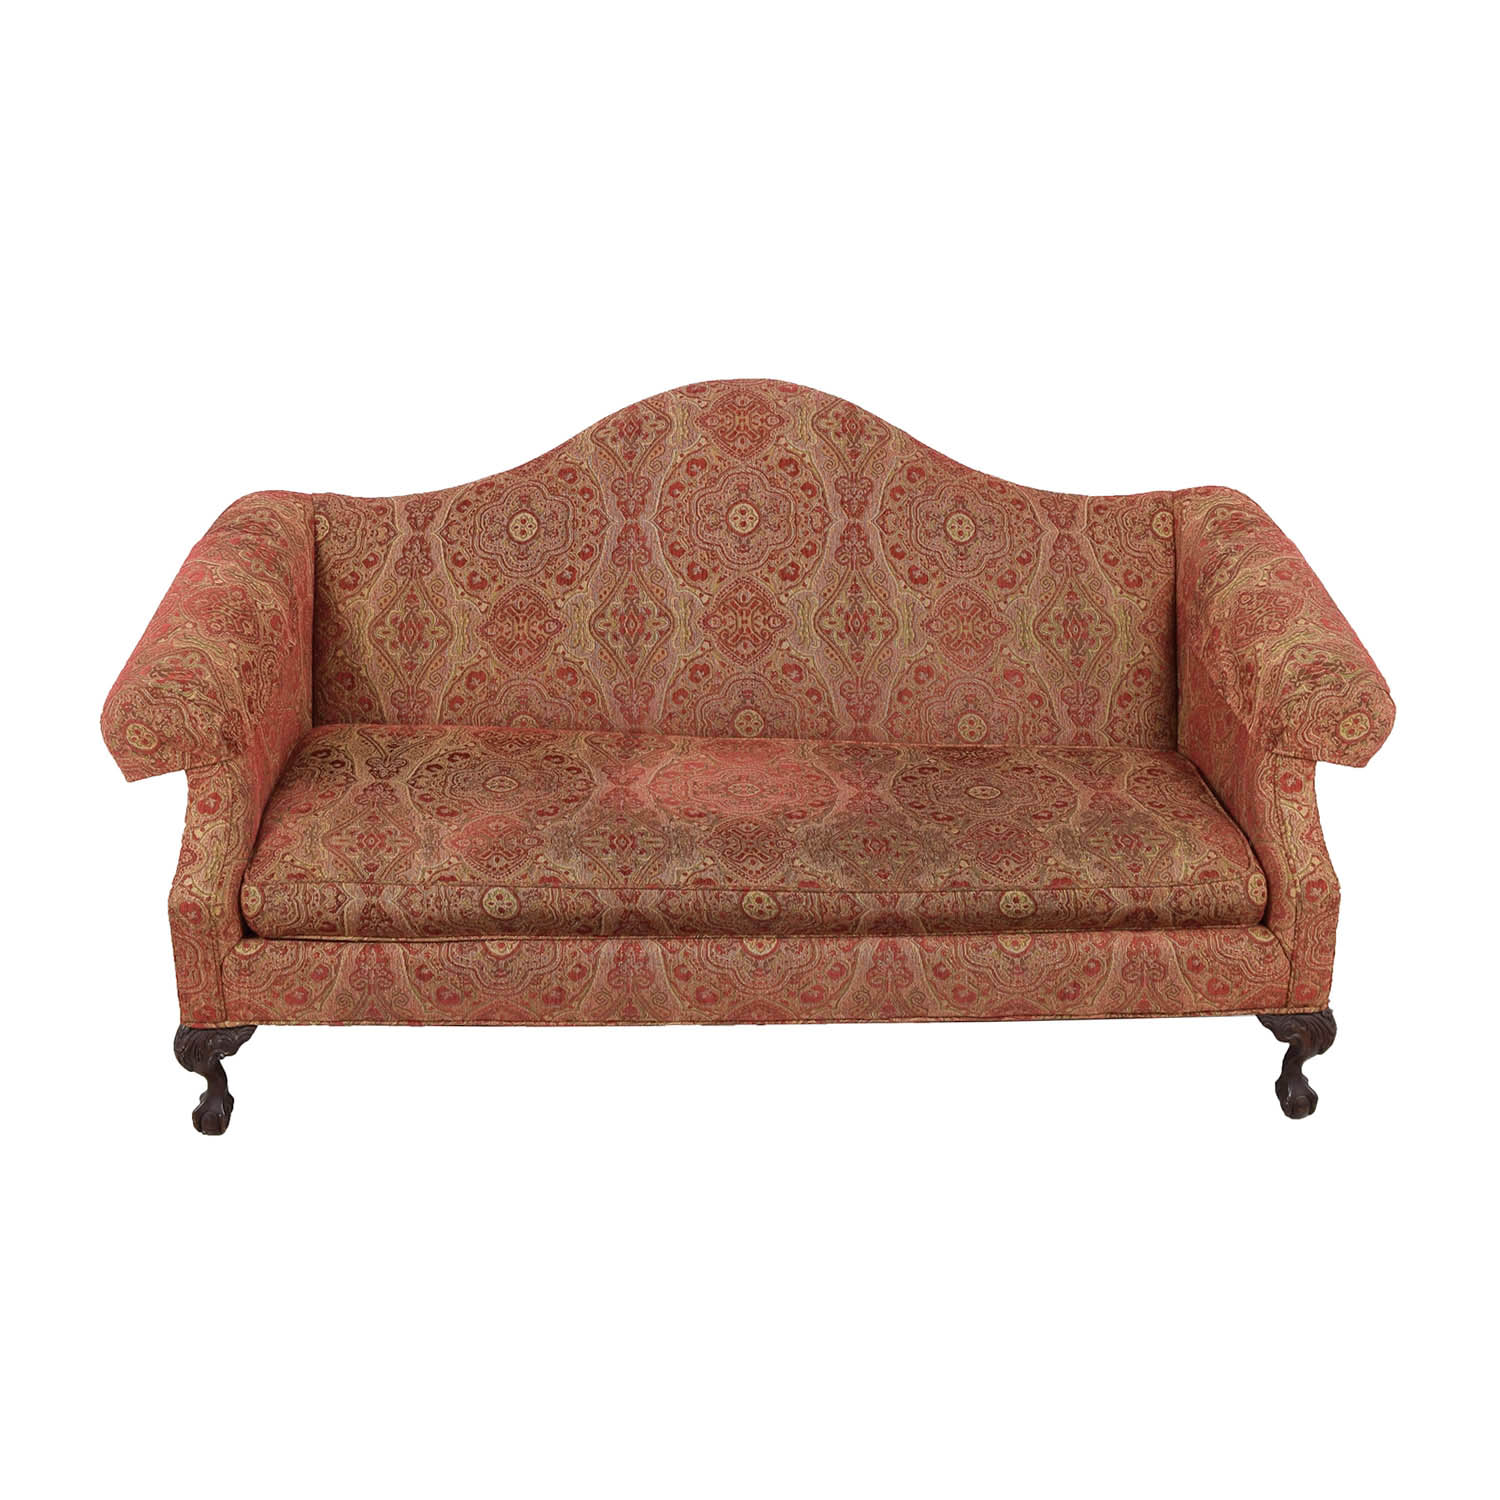 Ethan Allen Ethan Allen Paisley Camelback Sofa RUST (WITH RAISED PATTERNS)